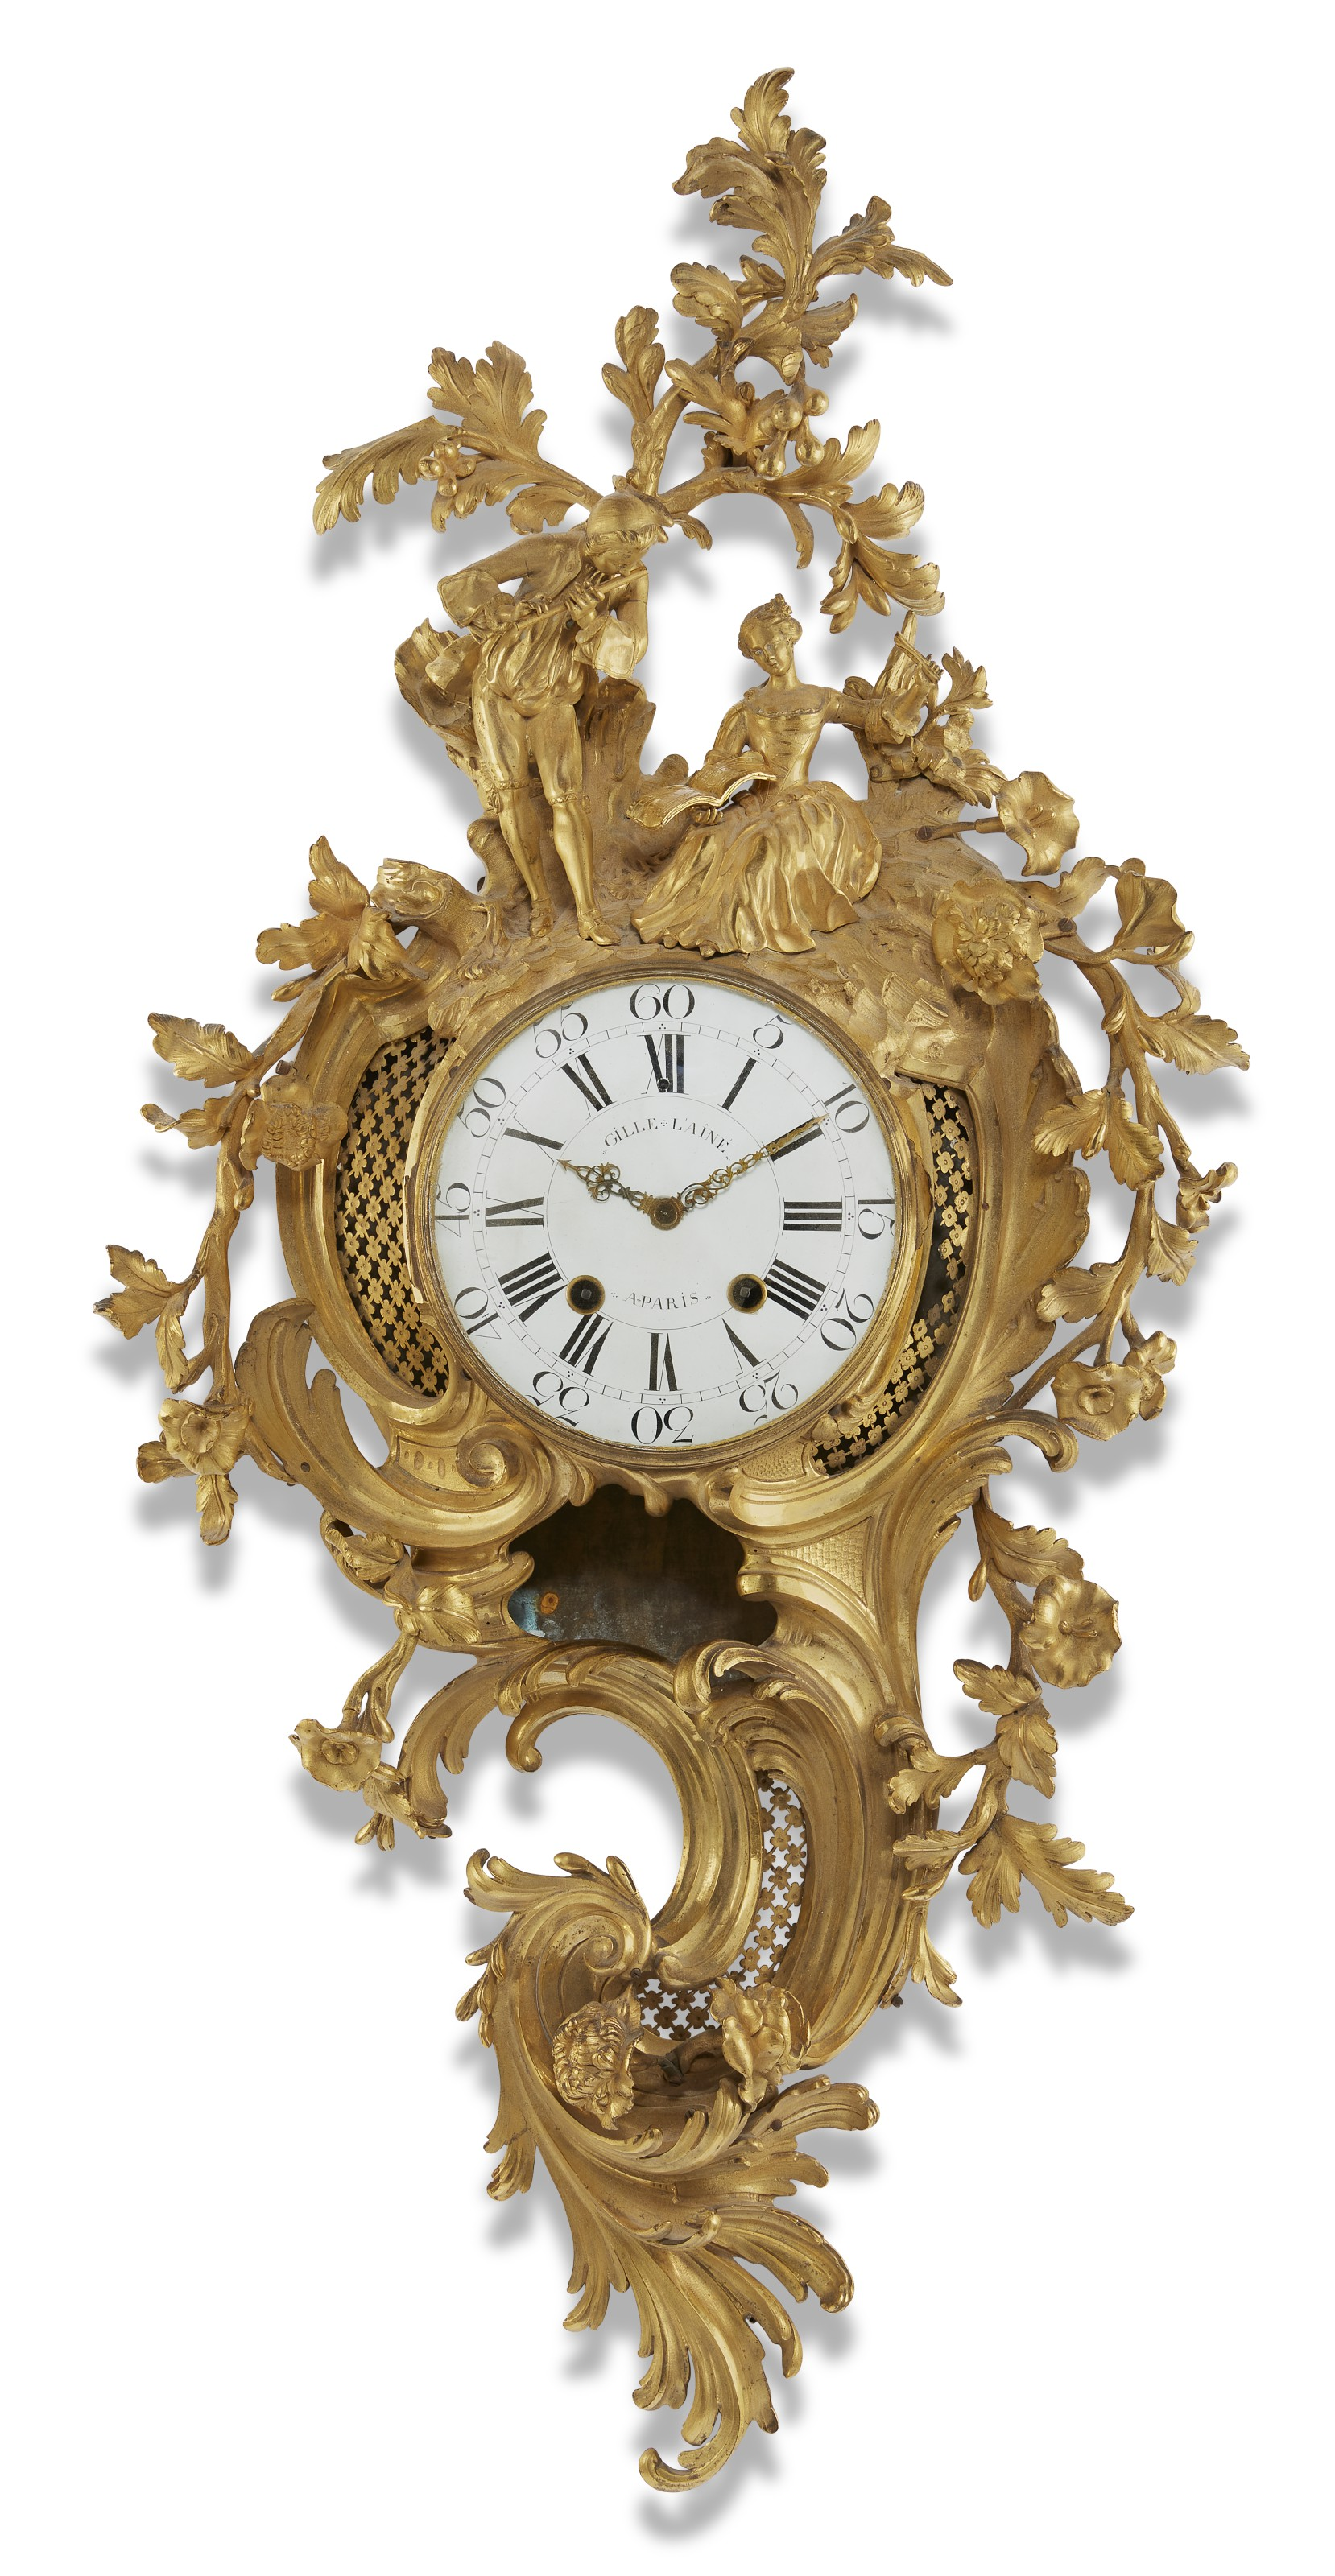 A Louis XV ormolu cartel clock, second quarter 18th century. 49  in (124.5  cm) high, 23½  in (62.3  cm) wide. Estimate $10,000-15,000. Offered in The Collector English & European Furniture, Ceramics, Silver & Works of Art on 5-19 October 2021 at Christie's Online